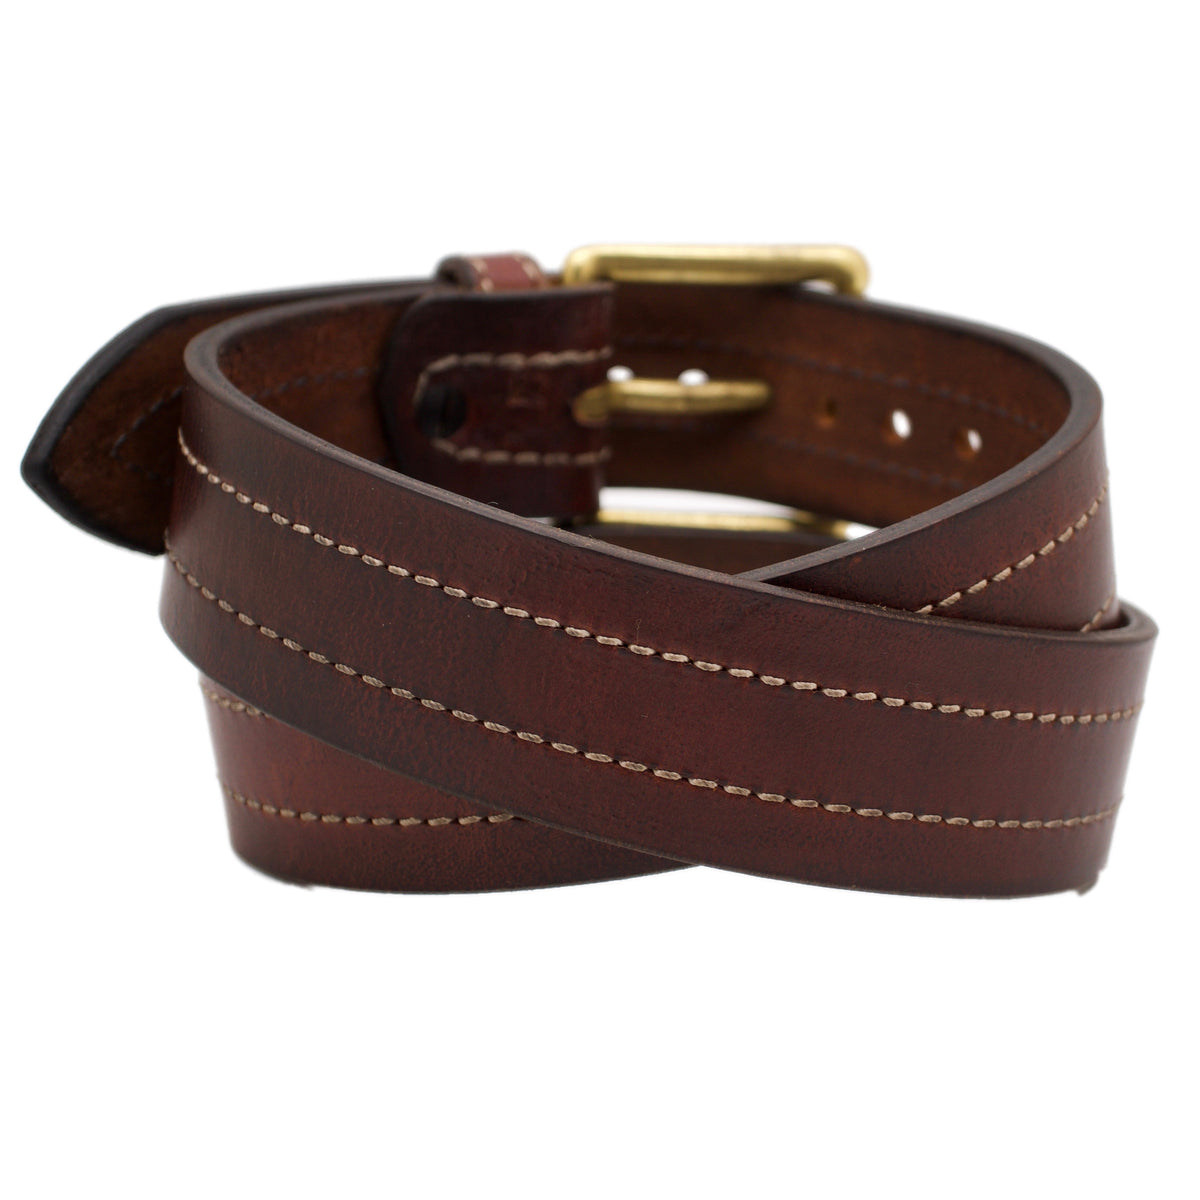 The SEATTLE Wide 1.75 Leather Belt